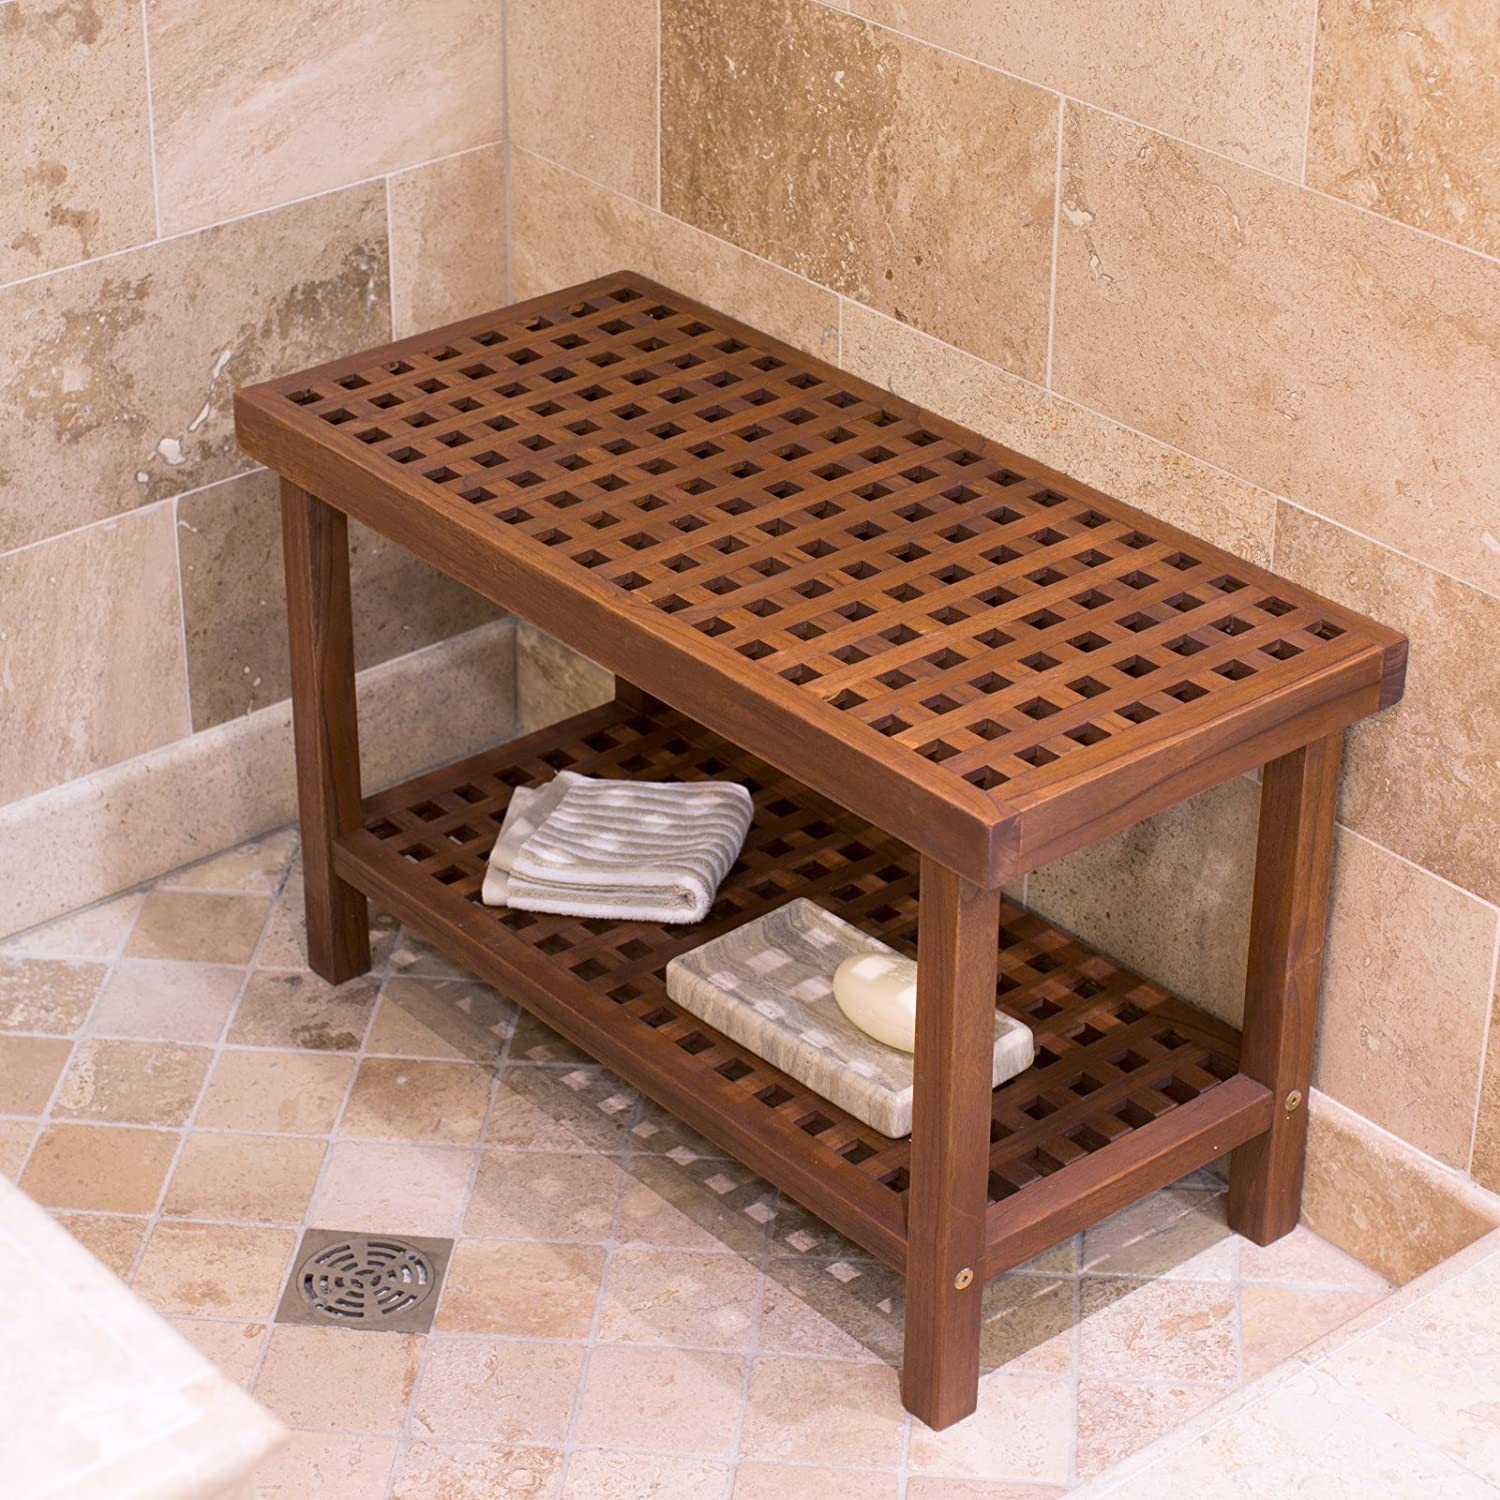 ada boomly folding bench compliant shower teak stool products